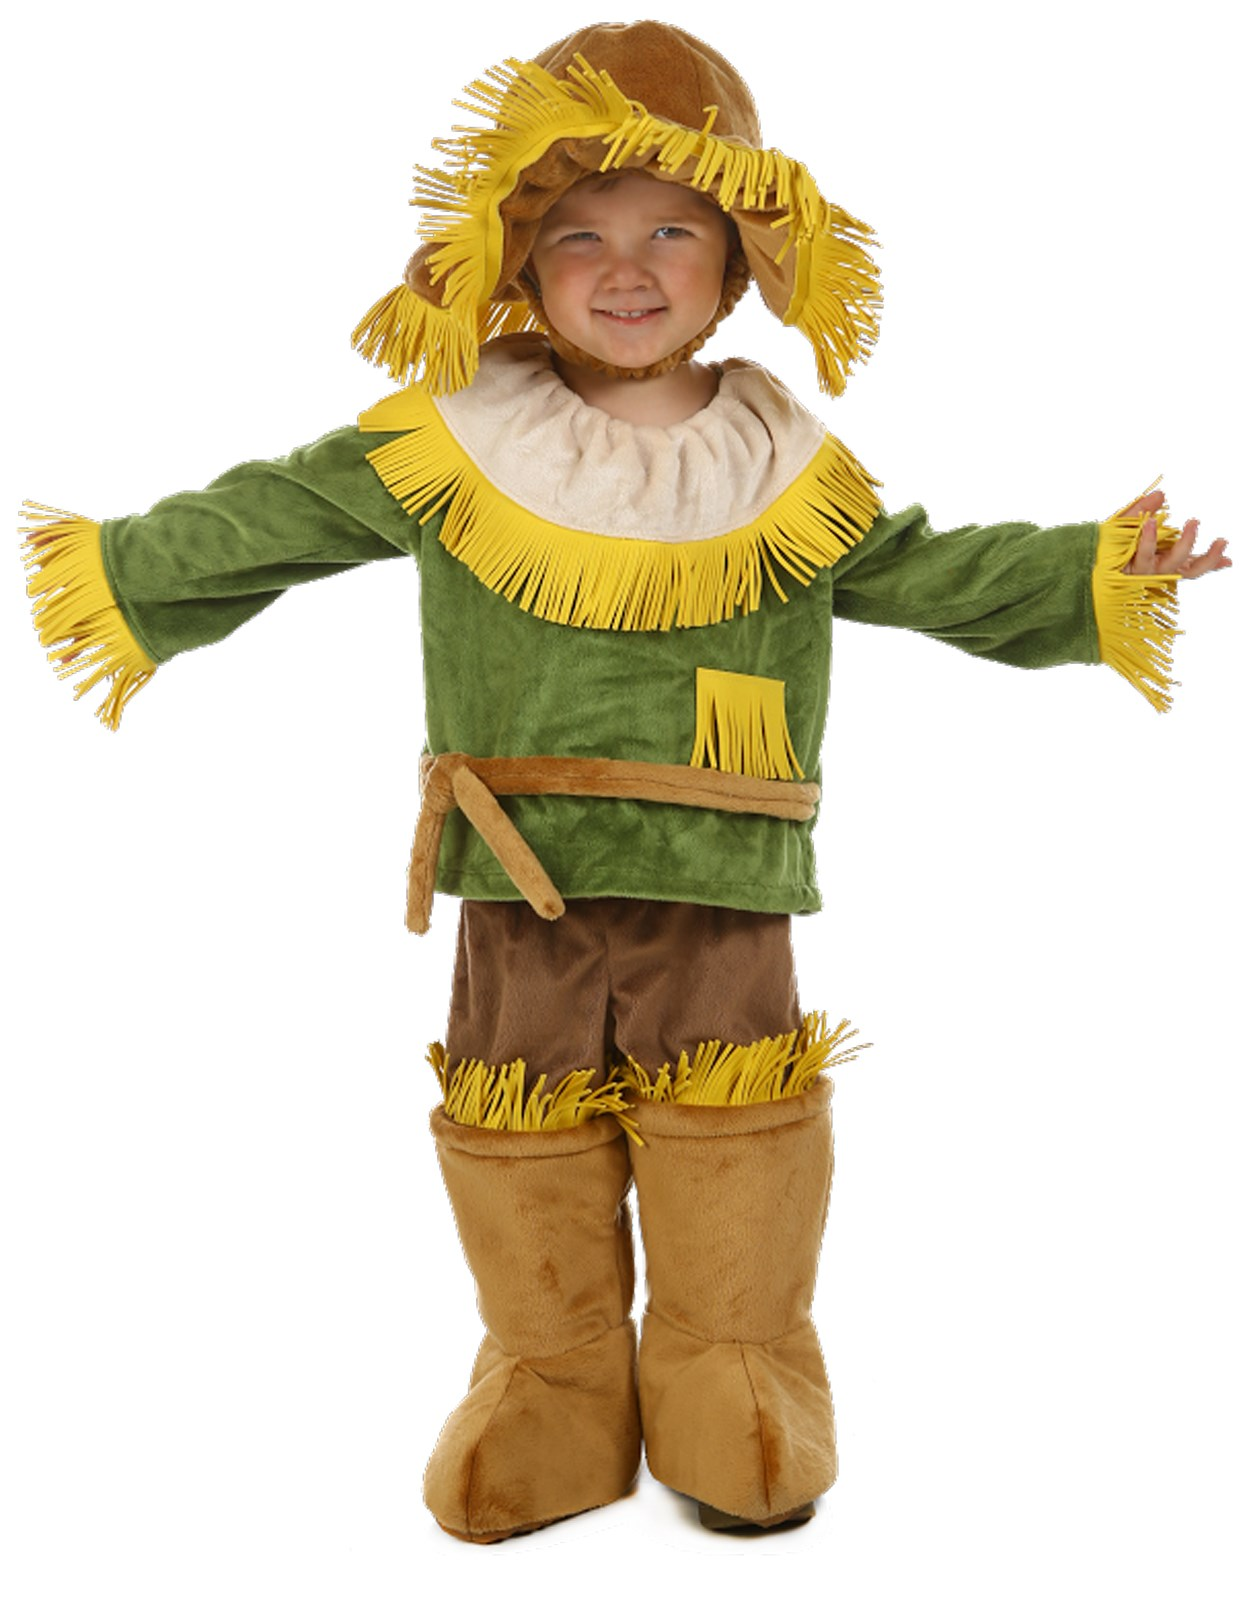 The Wizard of Oz Scarecrow Costume for Infants